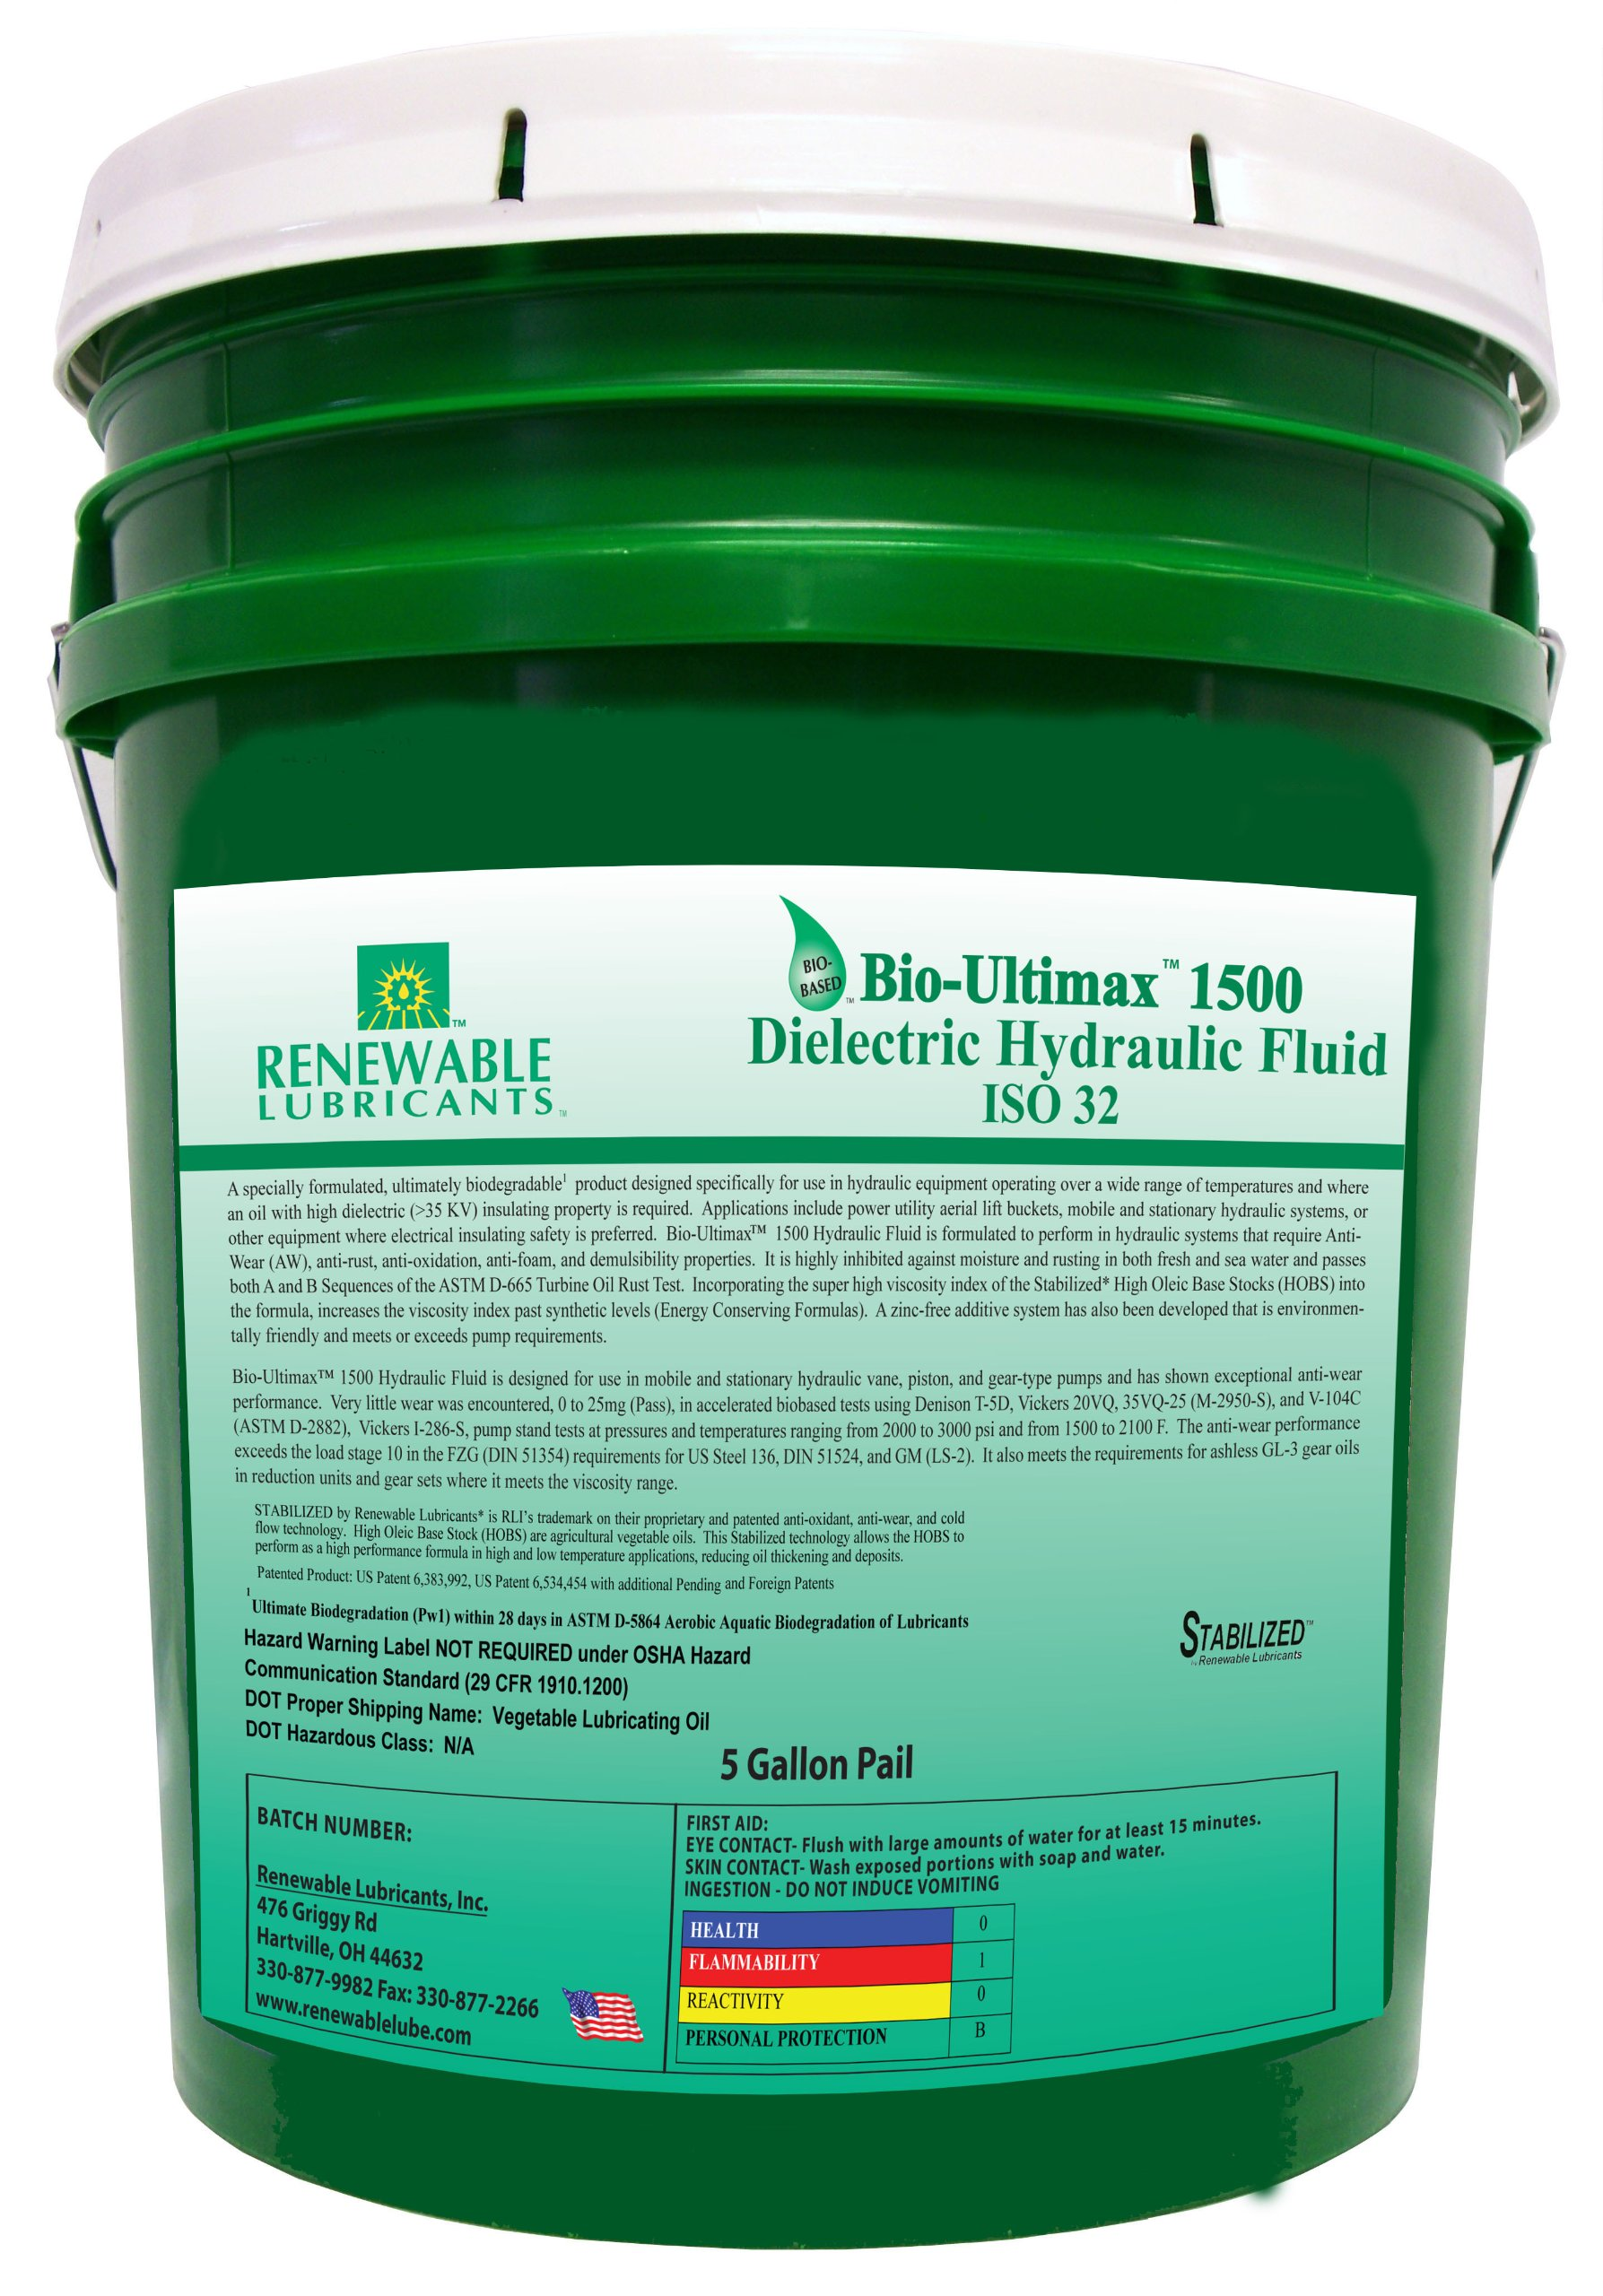 Renewable Lubricants Bio-Ultimax 1500 ISO 32 Dielectric Hydraulic Fluid, 5 Gallon Pail by Renewable Lubricants